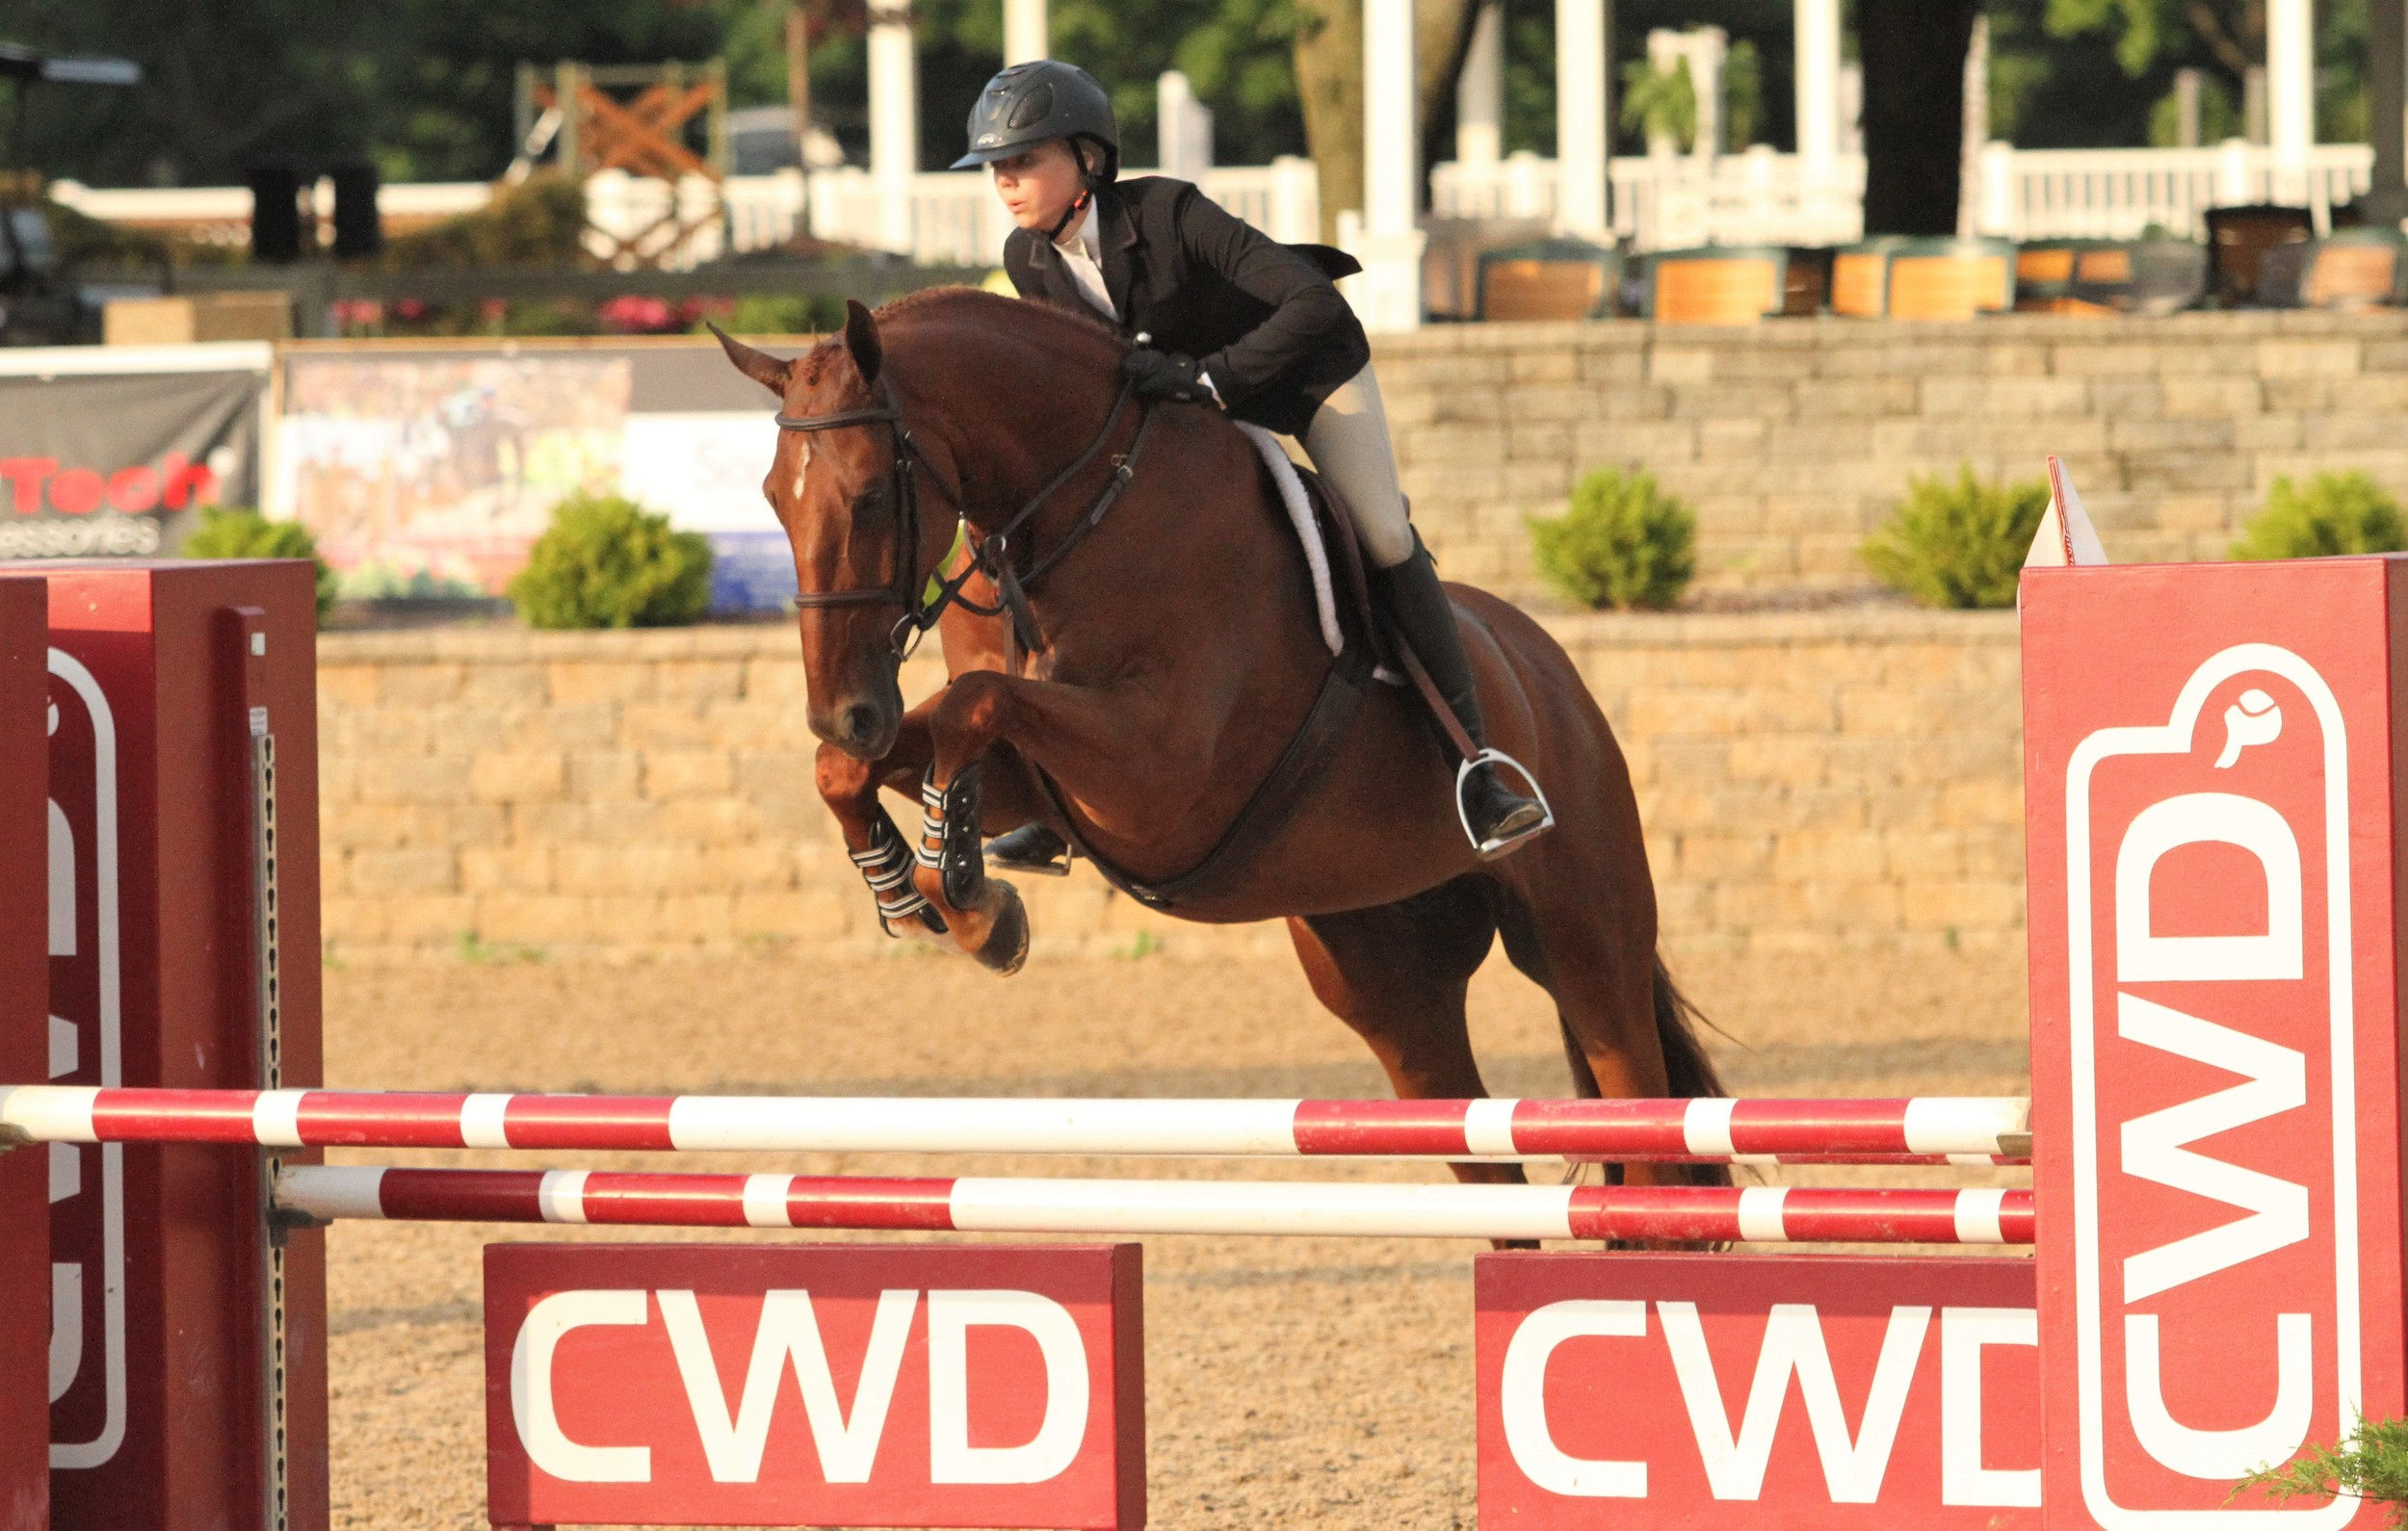 USEF Talent Search Medal Paige Matthies and Icaris Vede, owned by Dudley B Smith